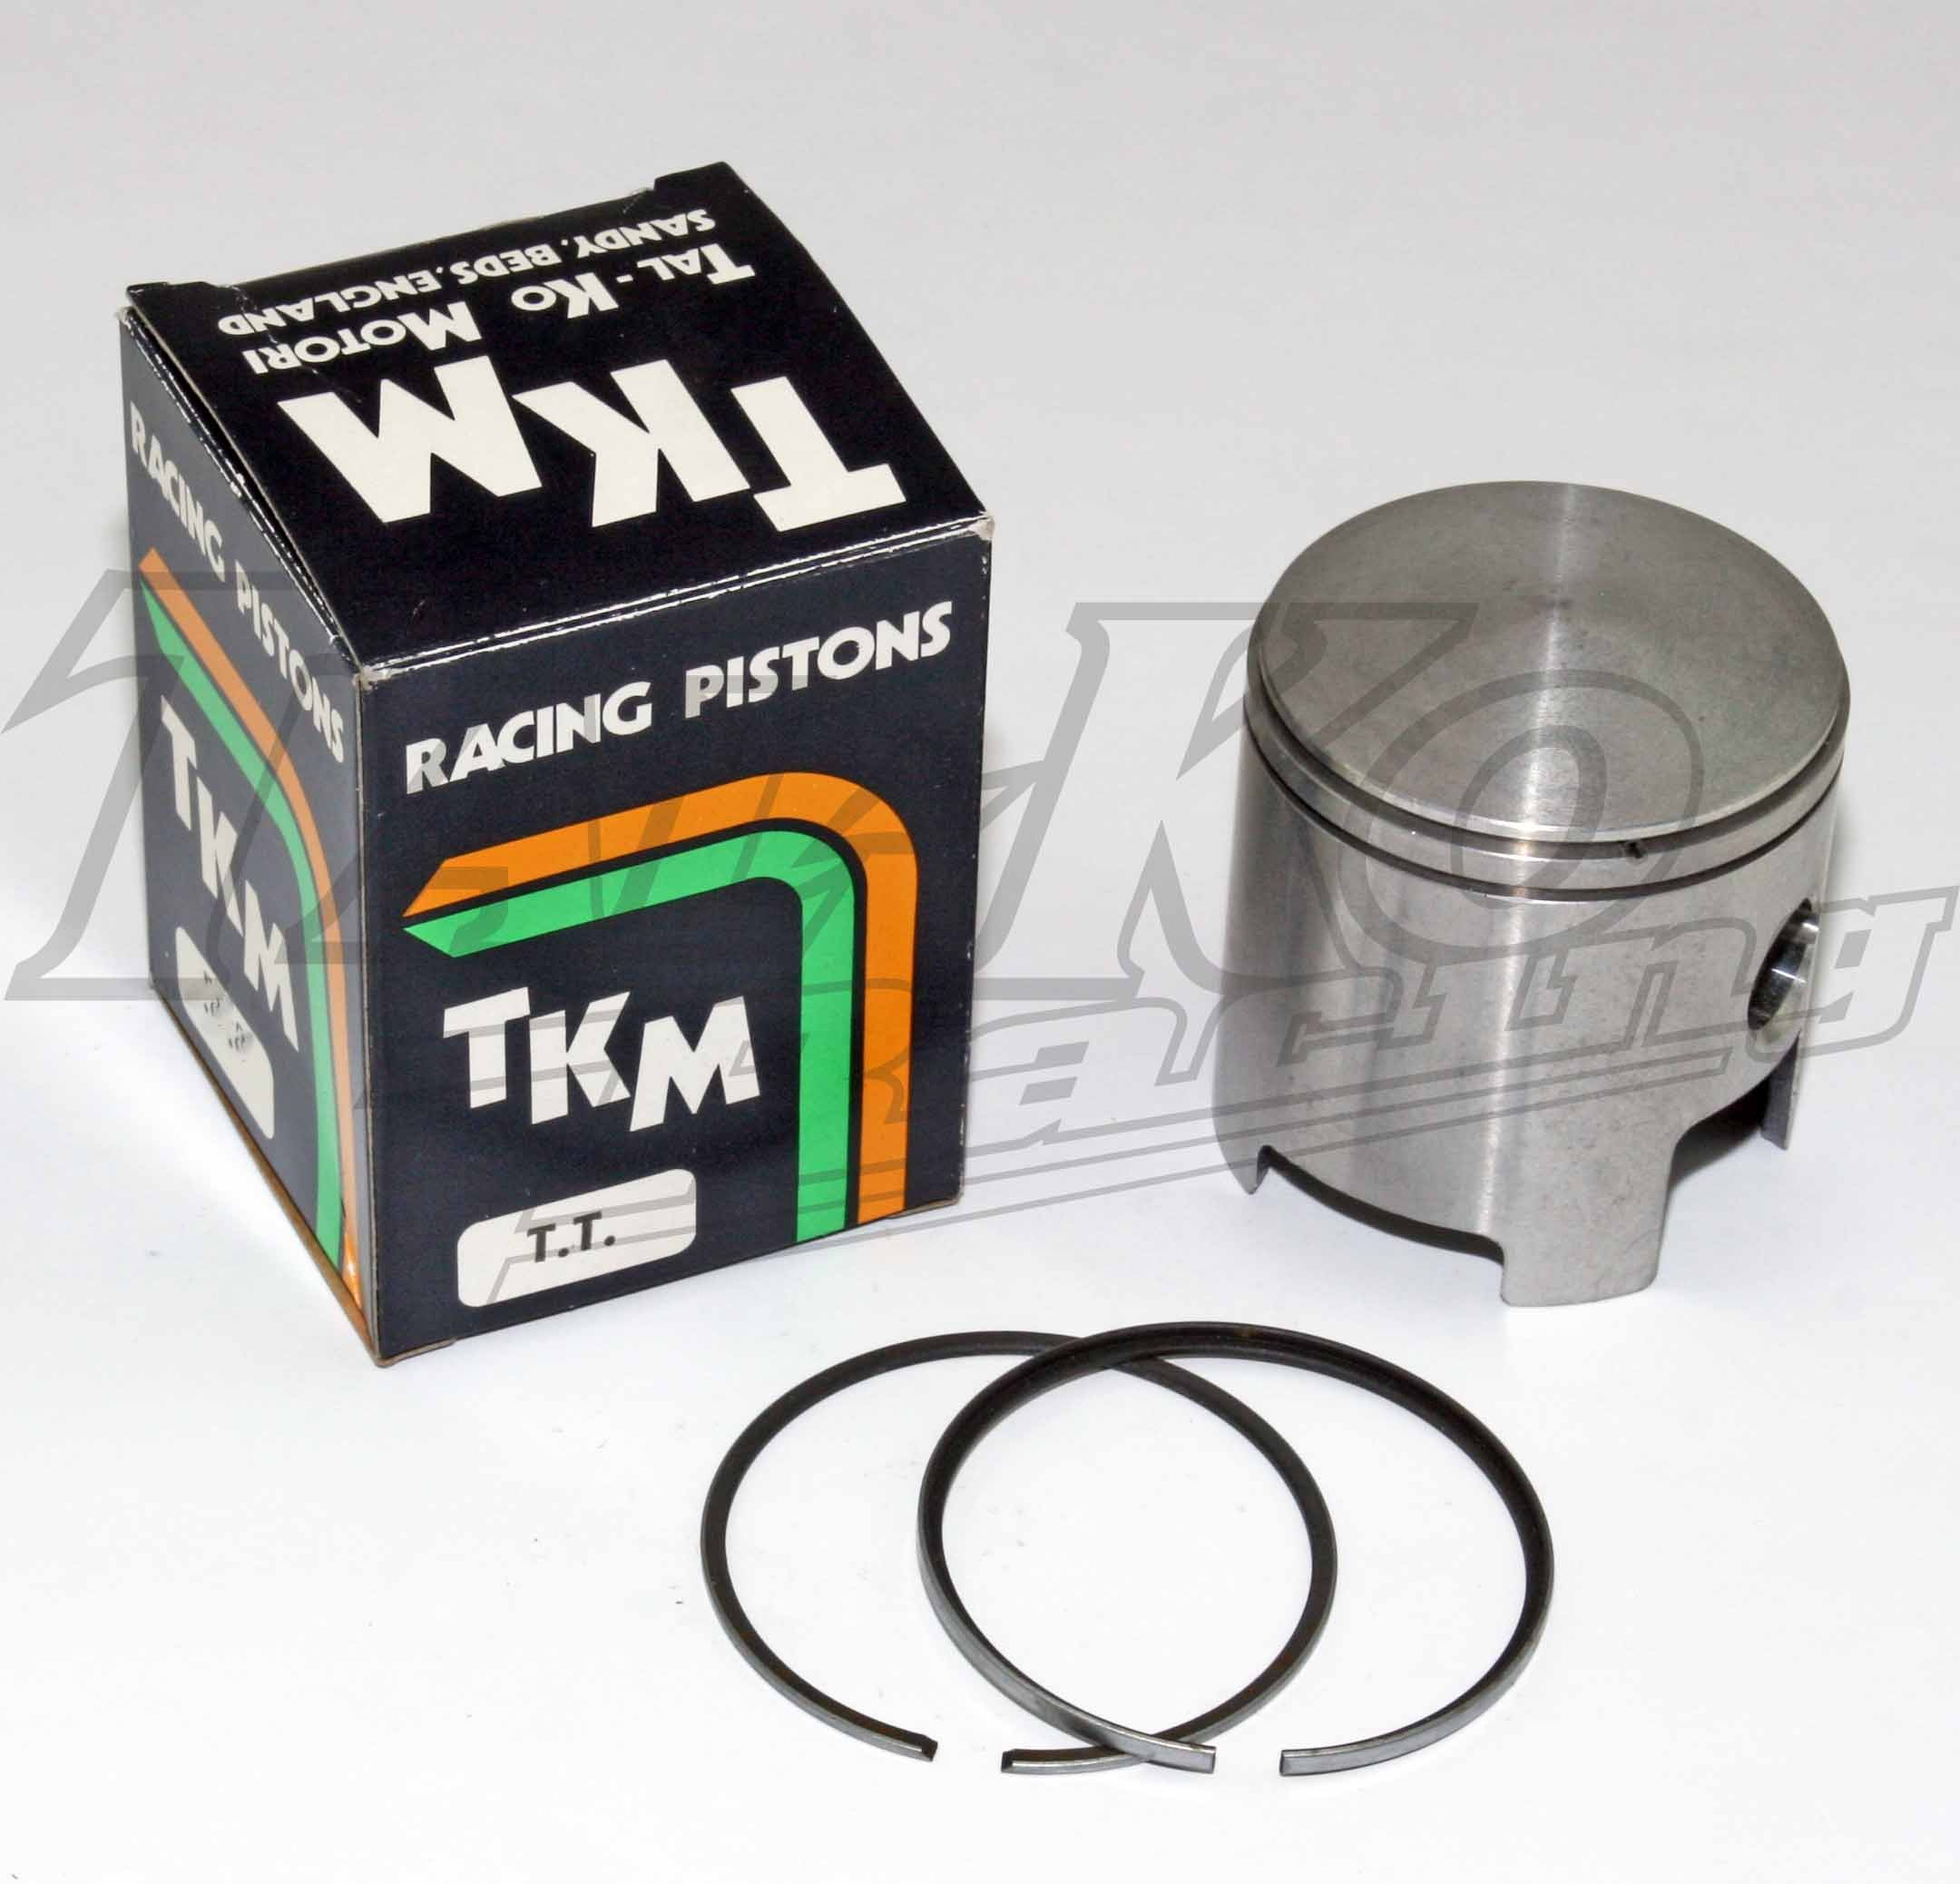 TKM TT PISTON + TWIN RING SET 54.80mm